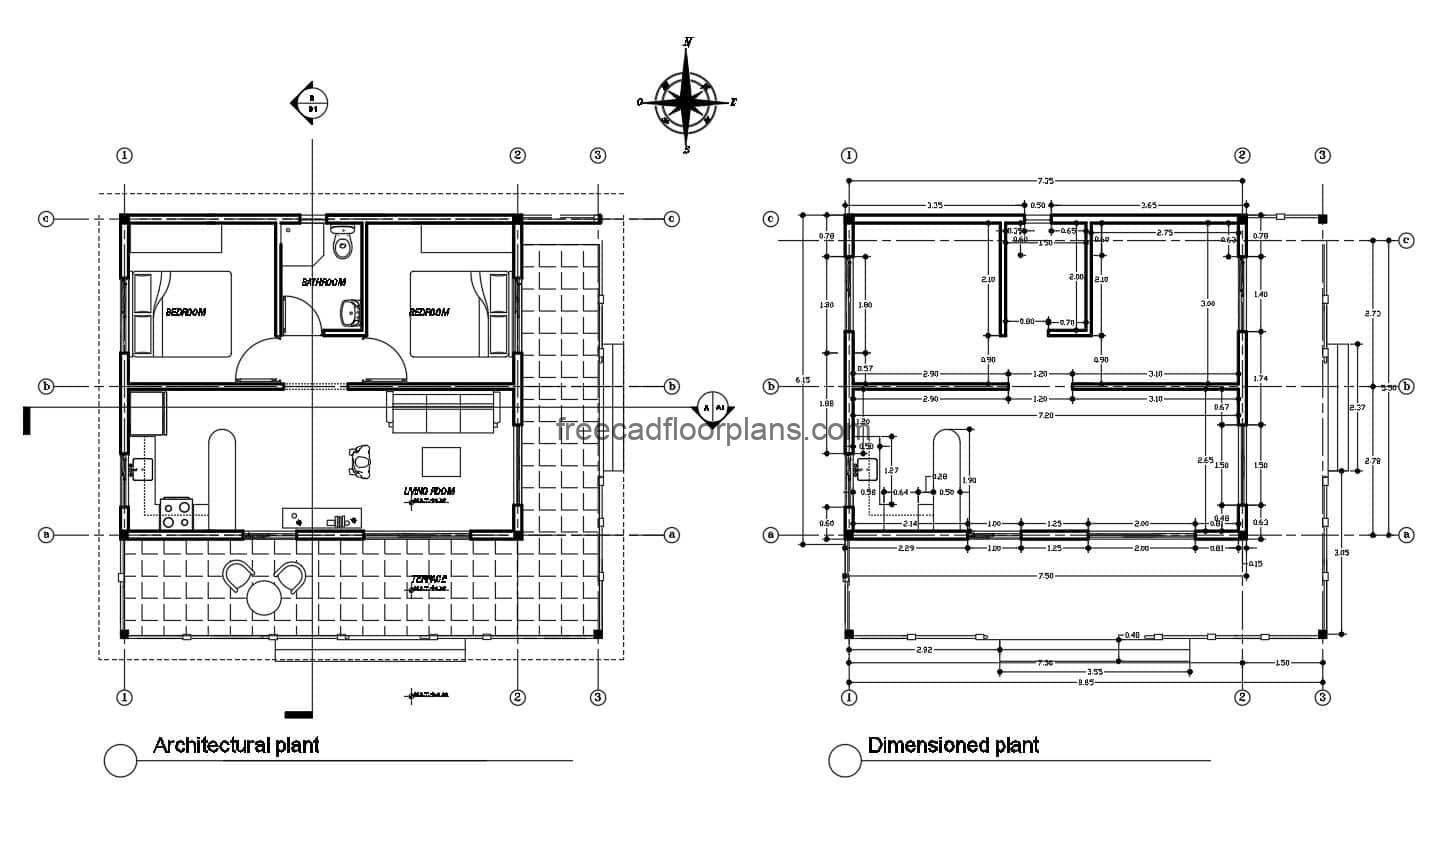 DWG small cotagge floorplans for download